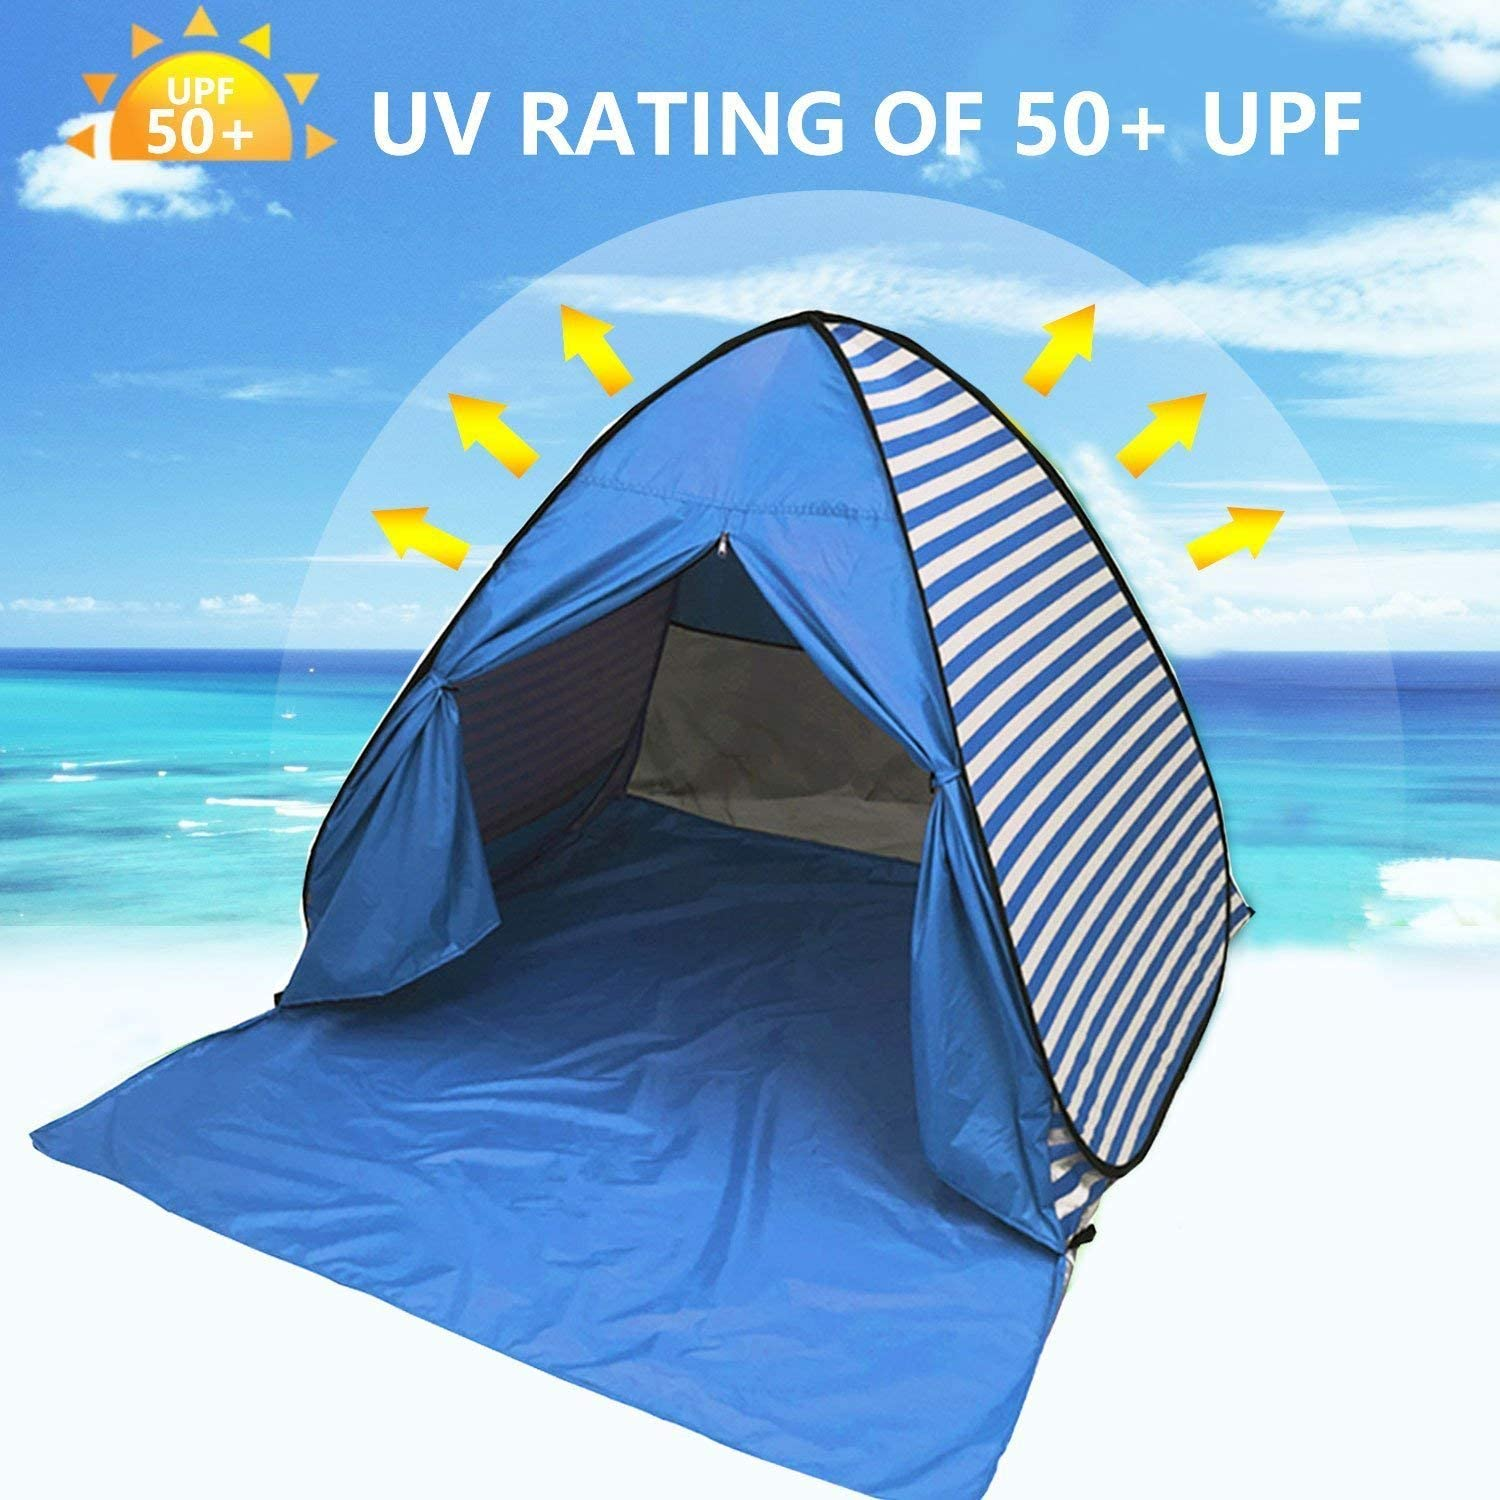 DIOSN Pop Up Beach Tent Beach Shade for 1 4 Persons,UPF 50 + UV Protection Sun Shelter Sun Shade,Automatic Kids Portable Tent Family Cabana Beach